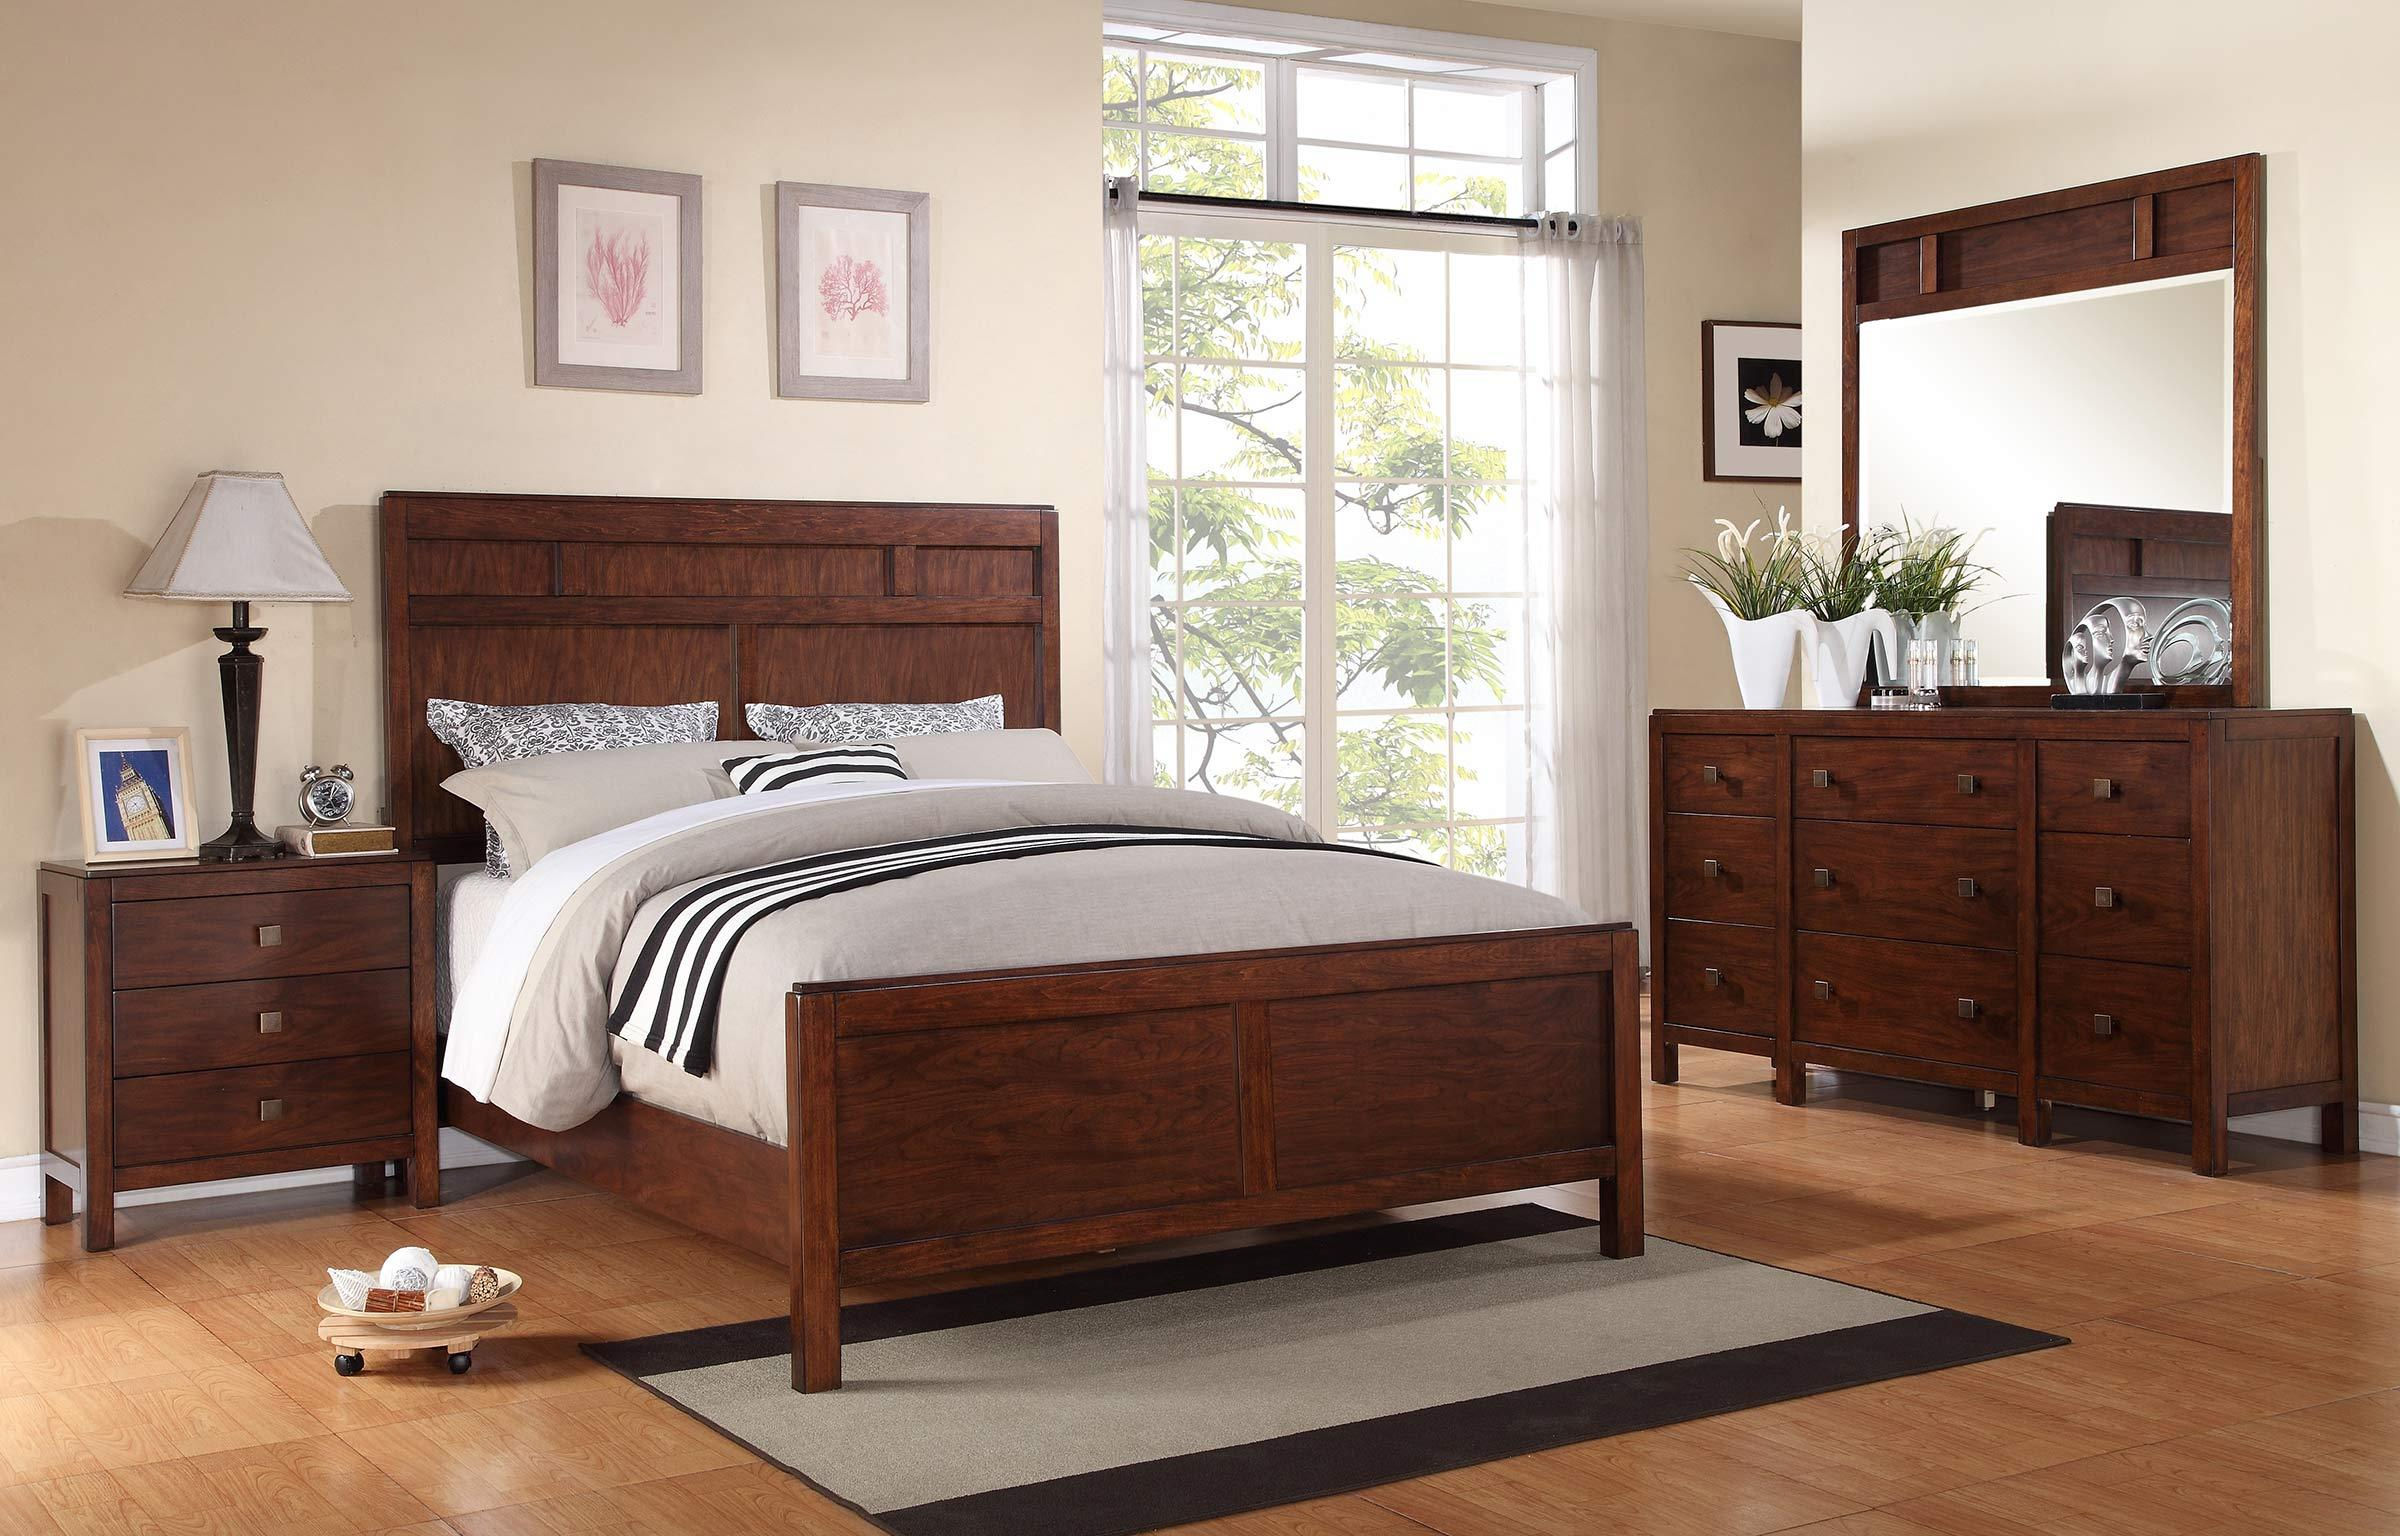 Winners Only Hampshire Queen Bedroom Group - Item Number: BH200 Q Bedroom Group 1